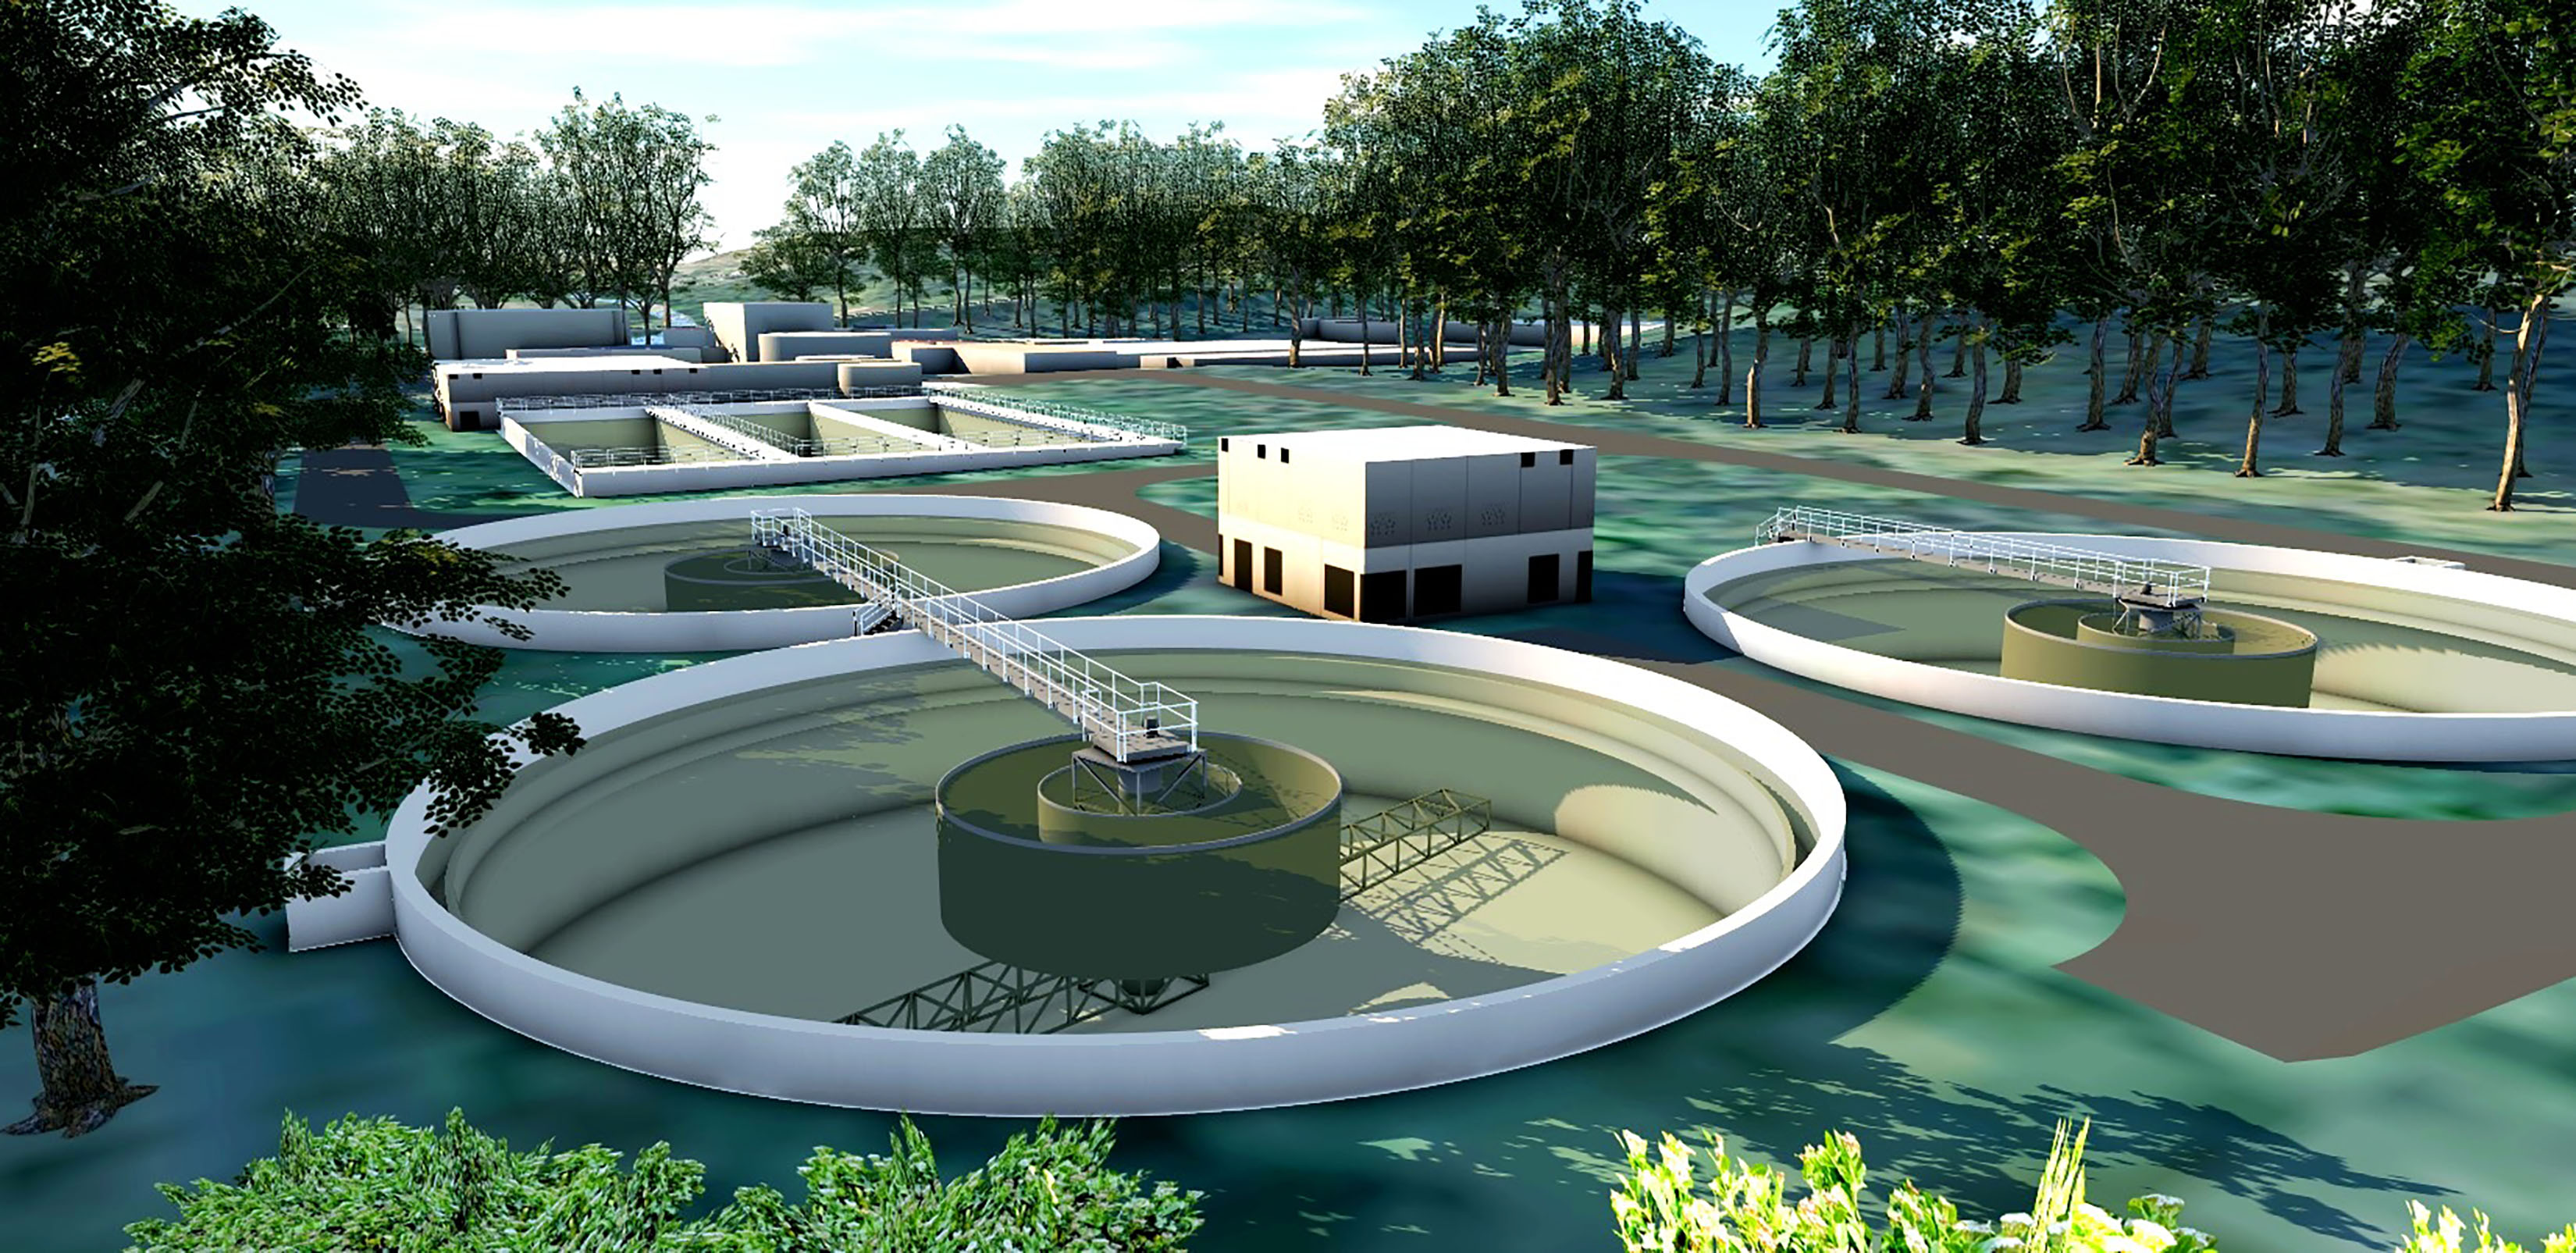 design of wastewater treatment plant environmental sciences essay After treatment at a wastewater treatment plant, the treated wastewater (also called effluent) is discharged to a receiving water body the terms wastewater reuse or  water reclamation  apply if the treated waste is used for another purpose.